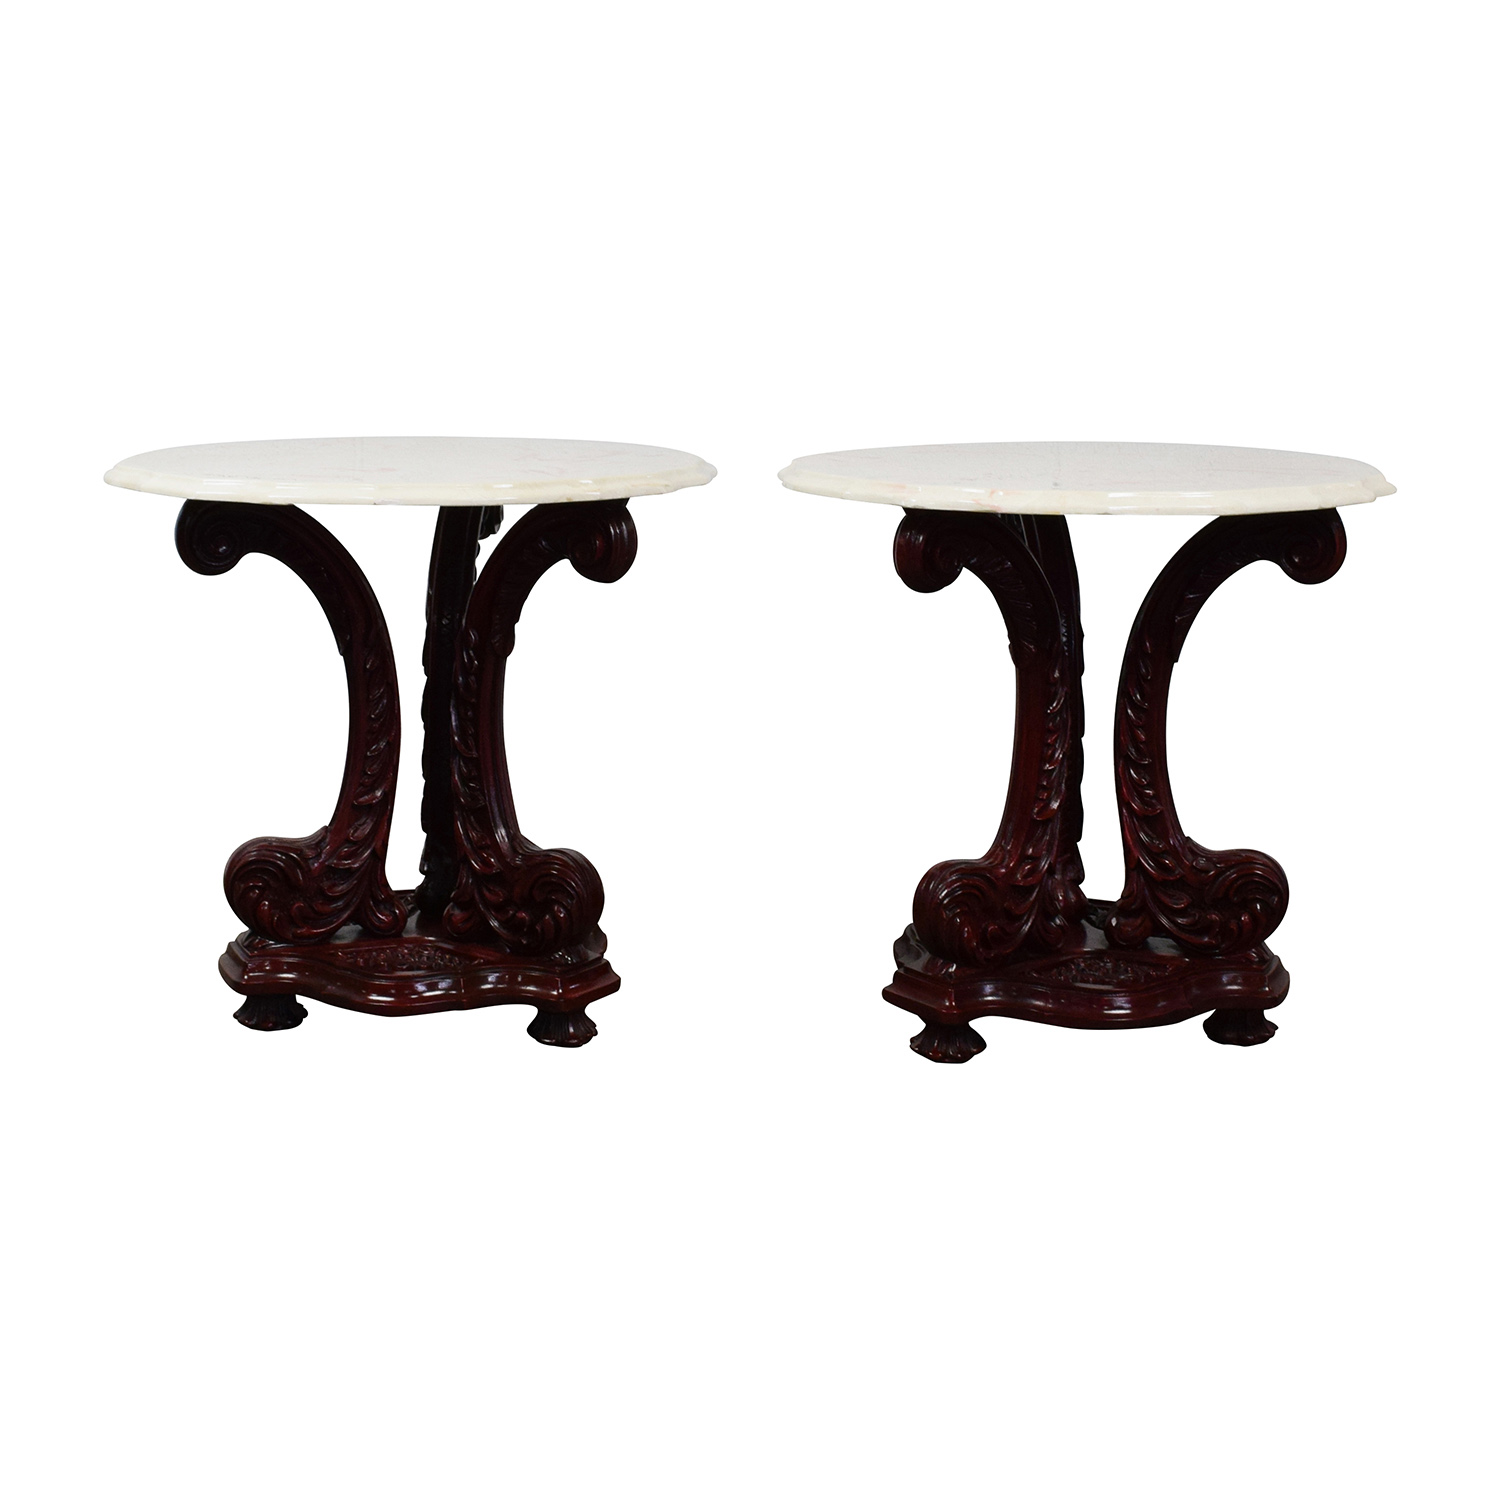 off marble top end tables with burgundy wood base white table gold accent nightstand kitchener set plant trellis low living room dog cage bath and beyond bedspreads contemporary